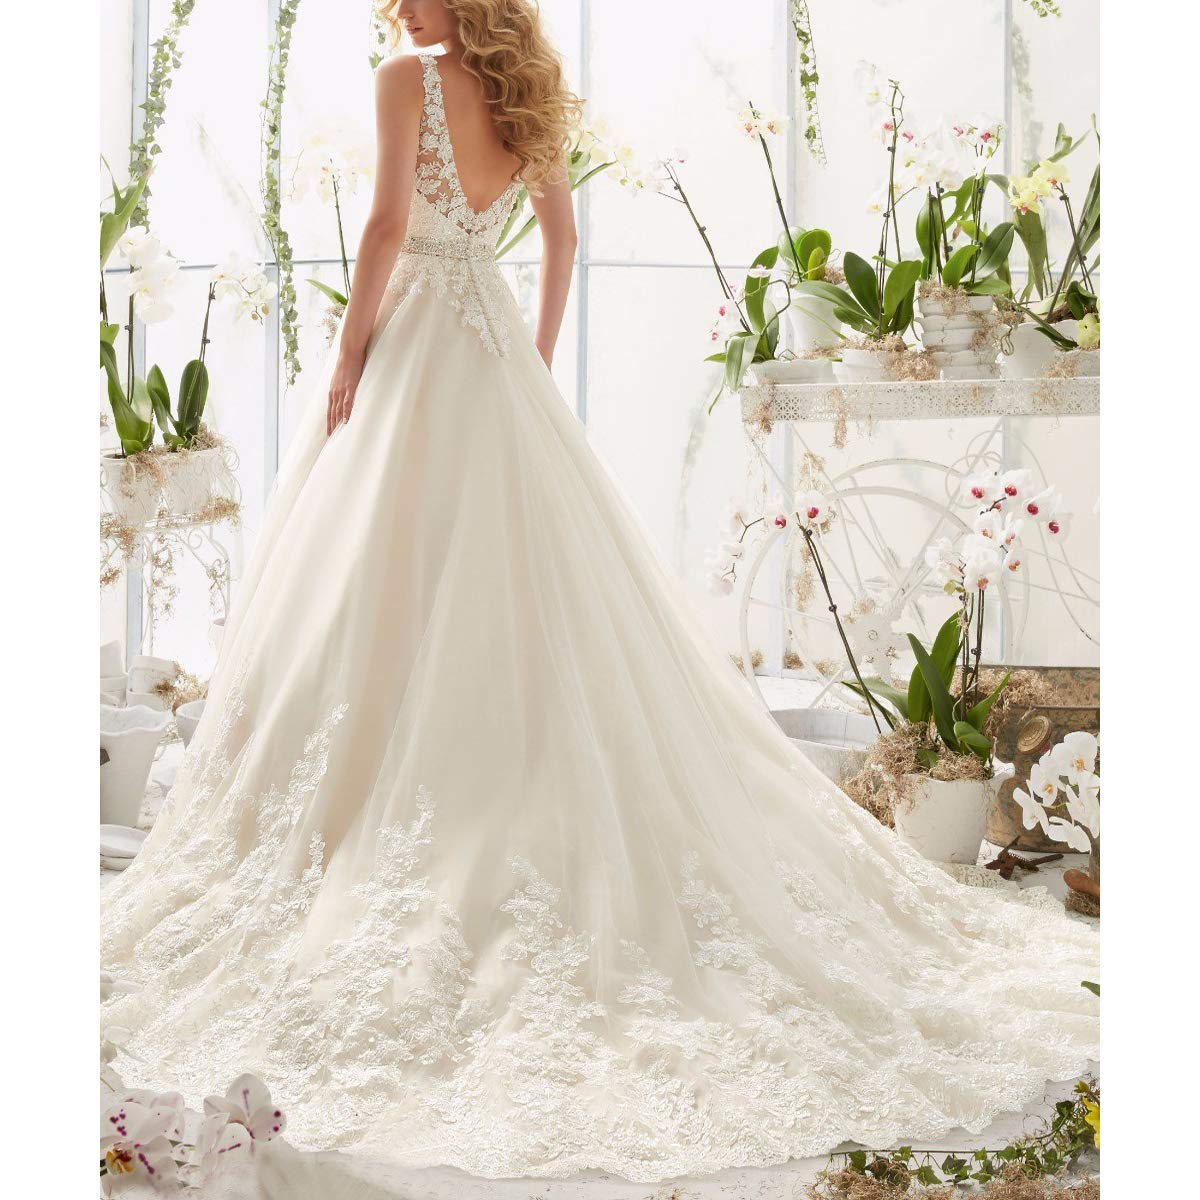 Lace Wedding Gown With Straps: OWMAN Lace V Neck Wedding Dress Beaded Bridal Dresses